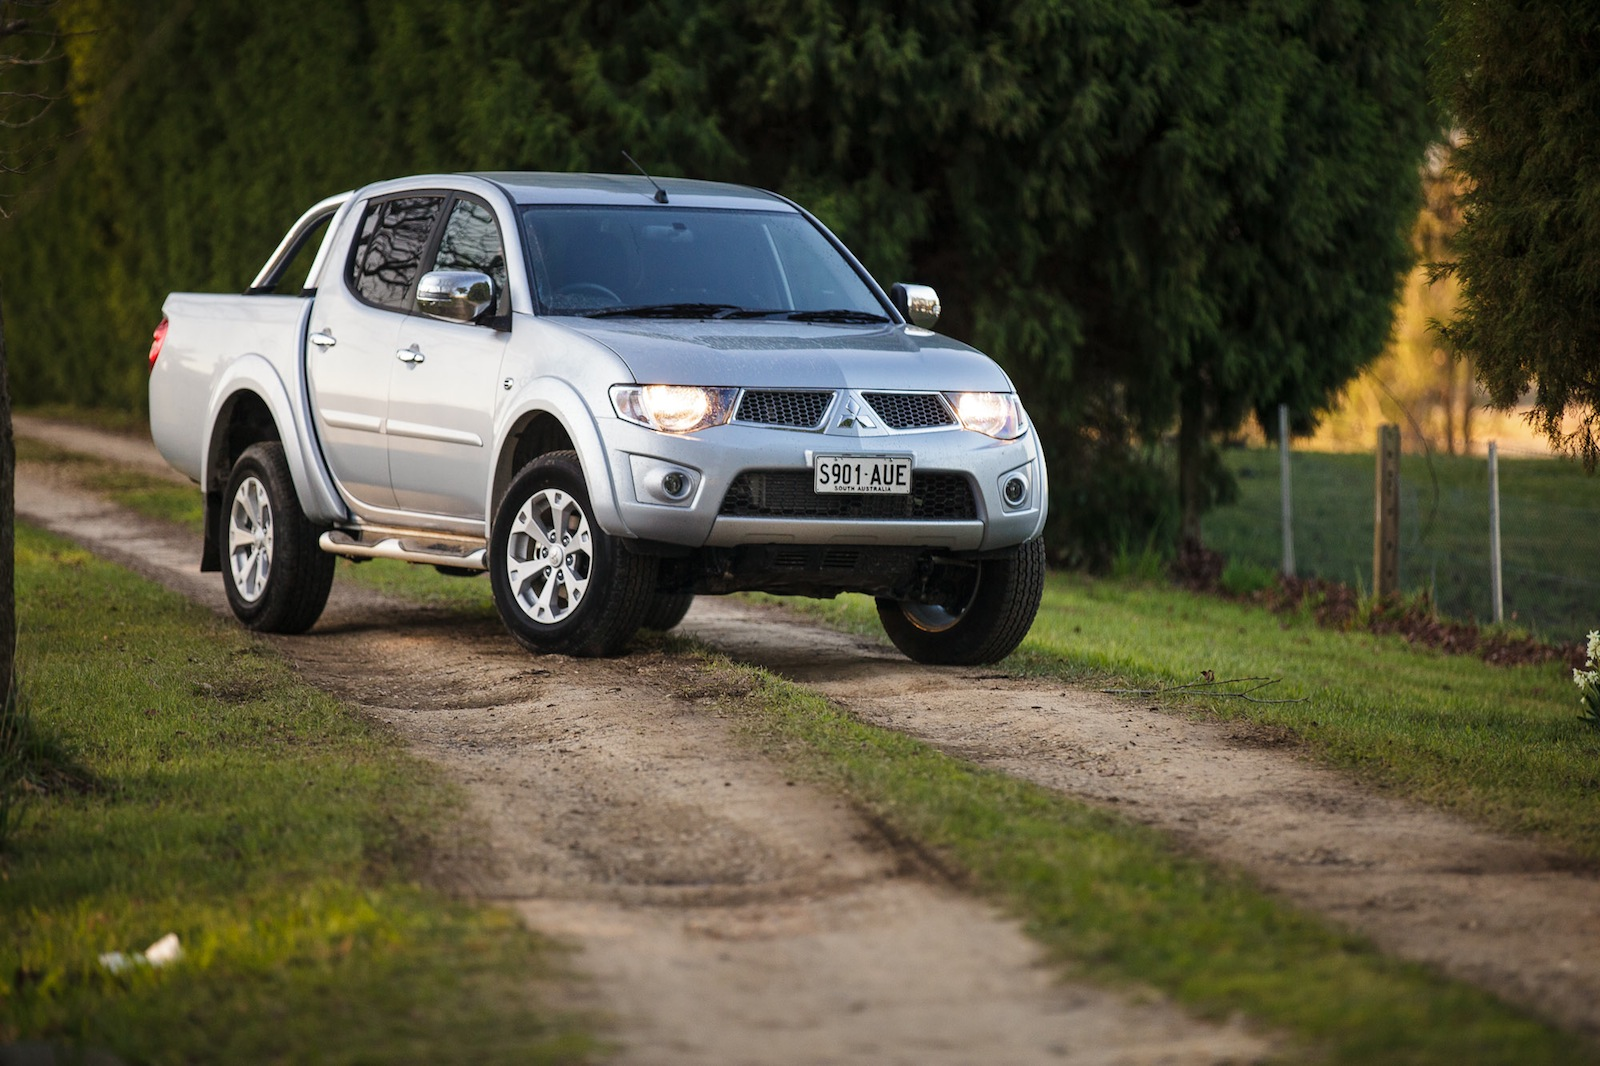 Car Sales Bounce Back From Sandy: Mitsubishi Triton Leads 4x4 Ute Sales Bounce-back In June